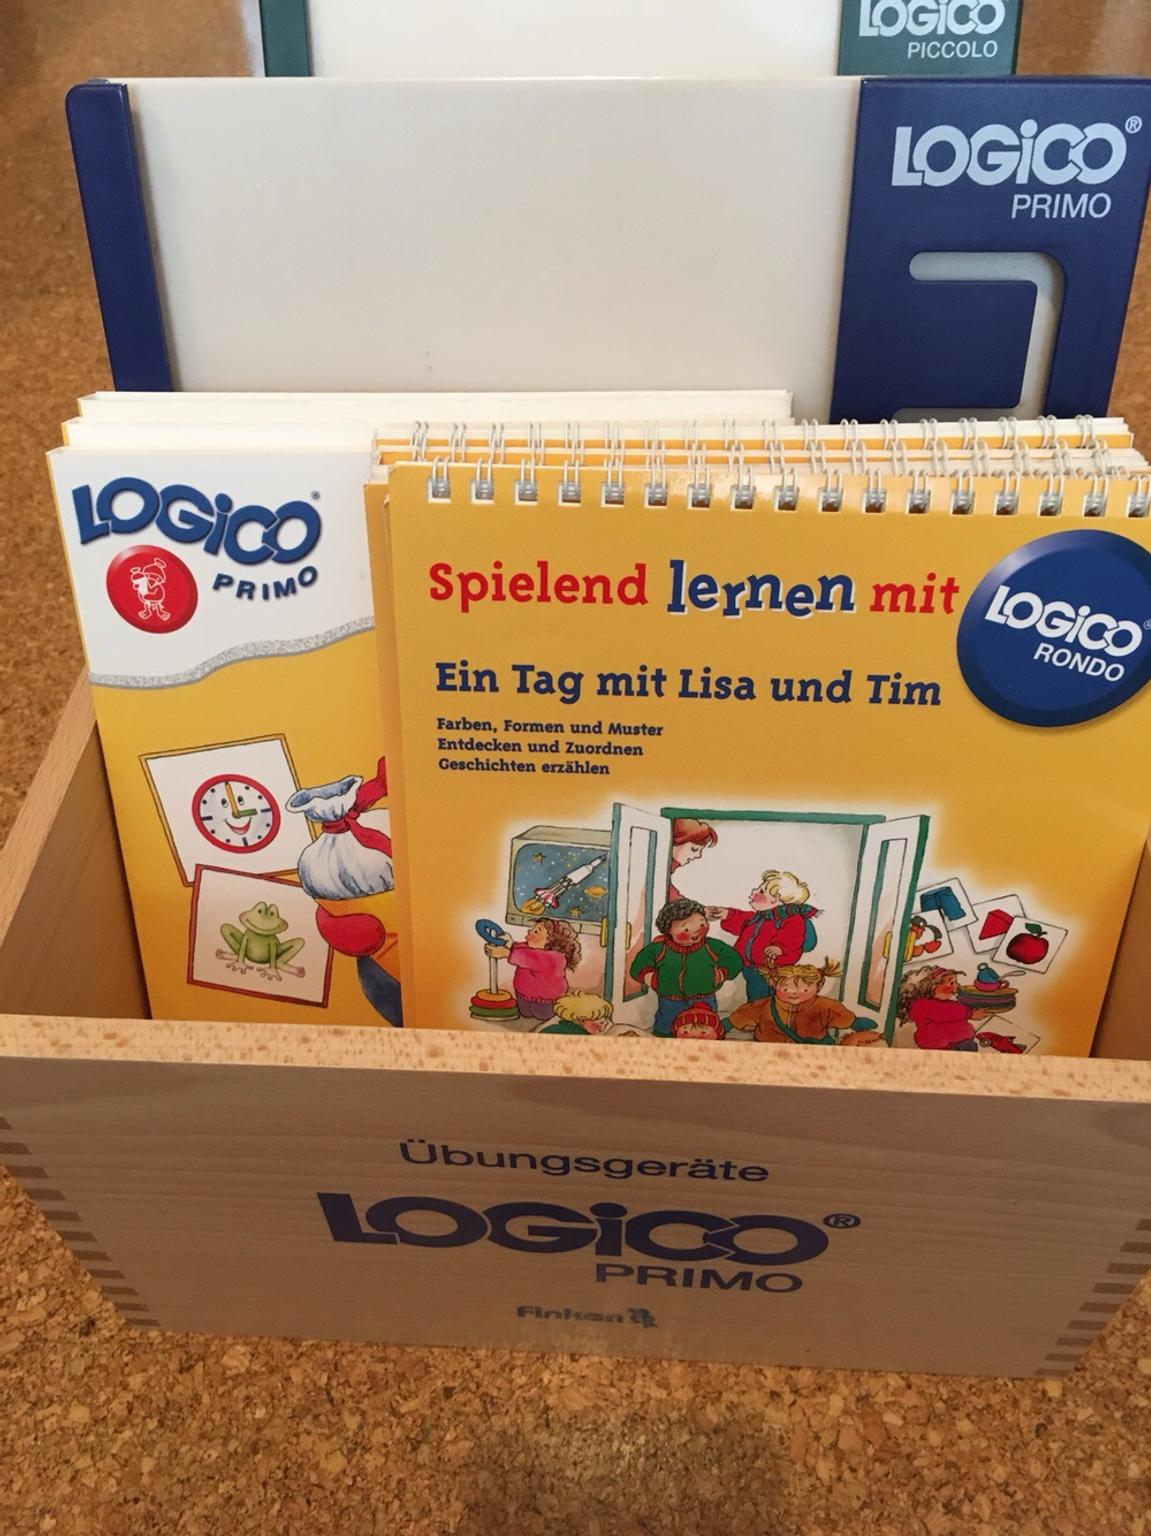 Hedendaags LOGICO PRIMO & PICCOLO in 28259 Bremen for €90.00 for sale - Shpock XC-76